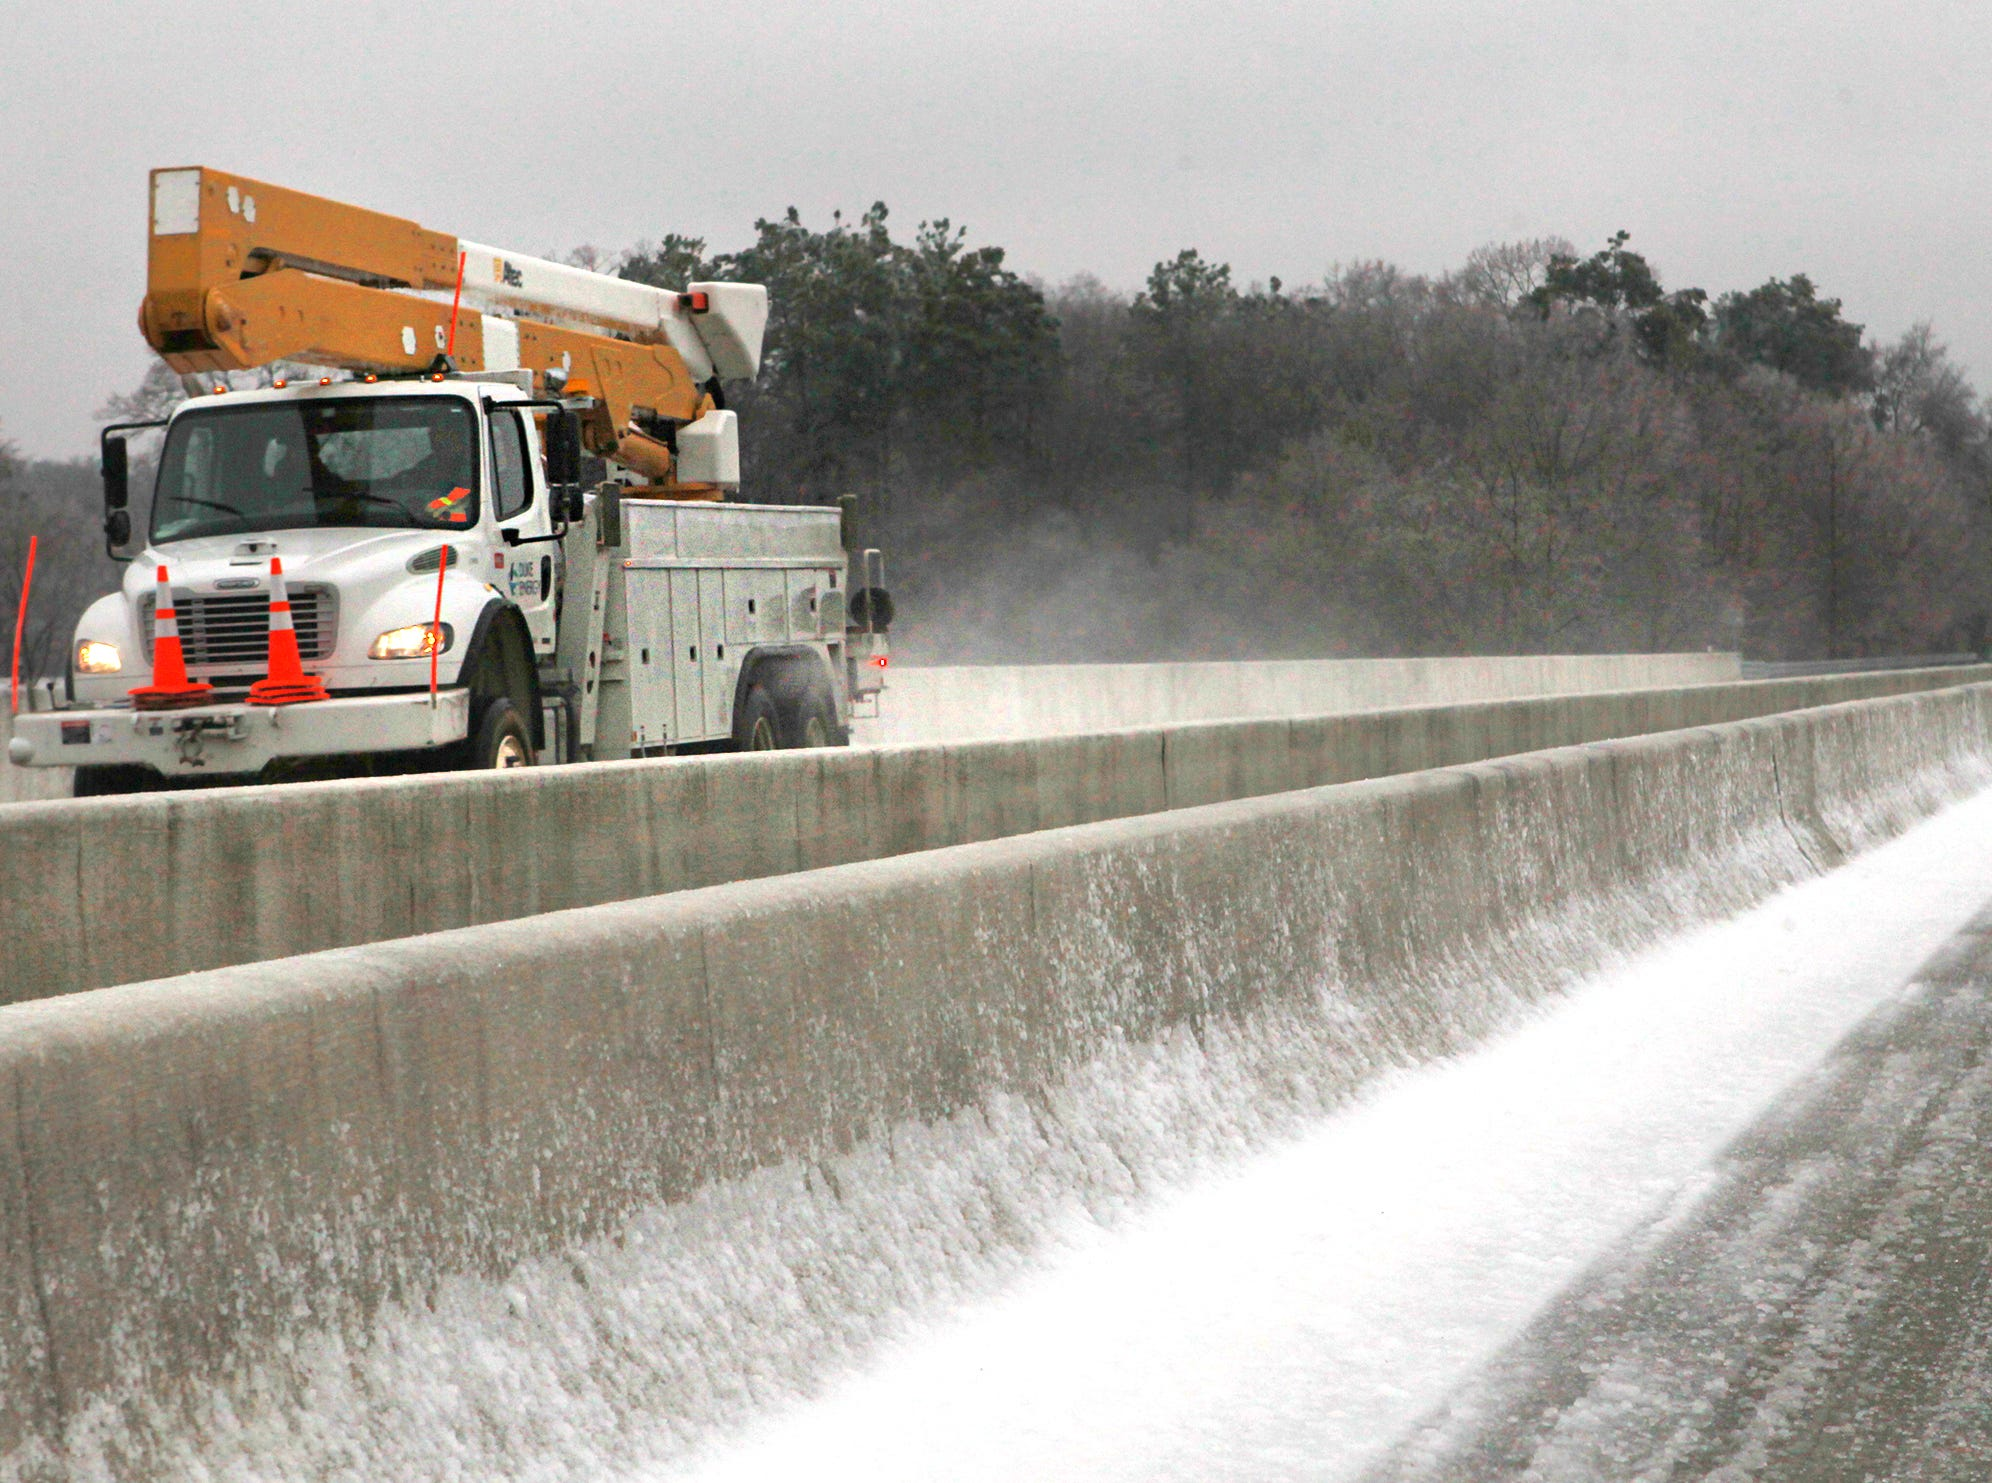 A Duke Energy truck drives over a bridge on S.C. 93 in Clemson toward Clemson Univeristy. Power outages from ice and snow kept many emergency workers busy in 2015.